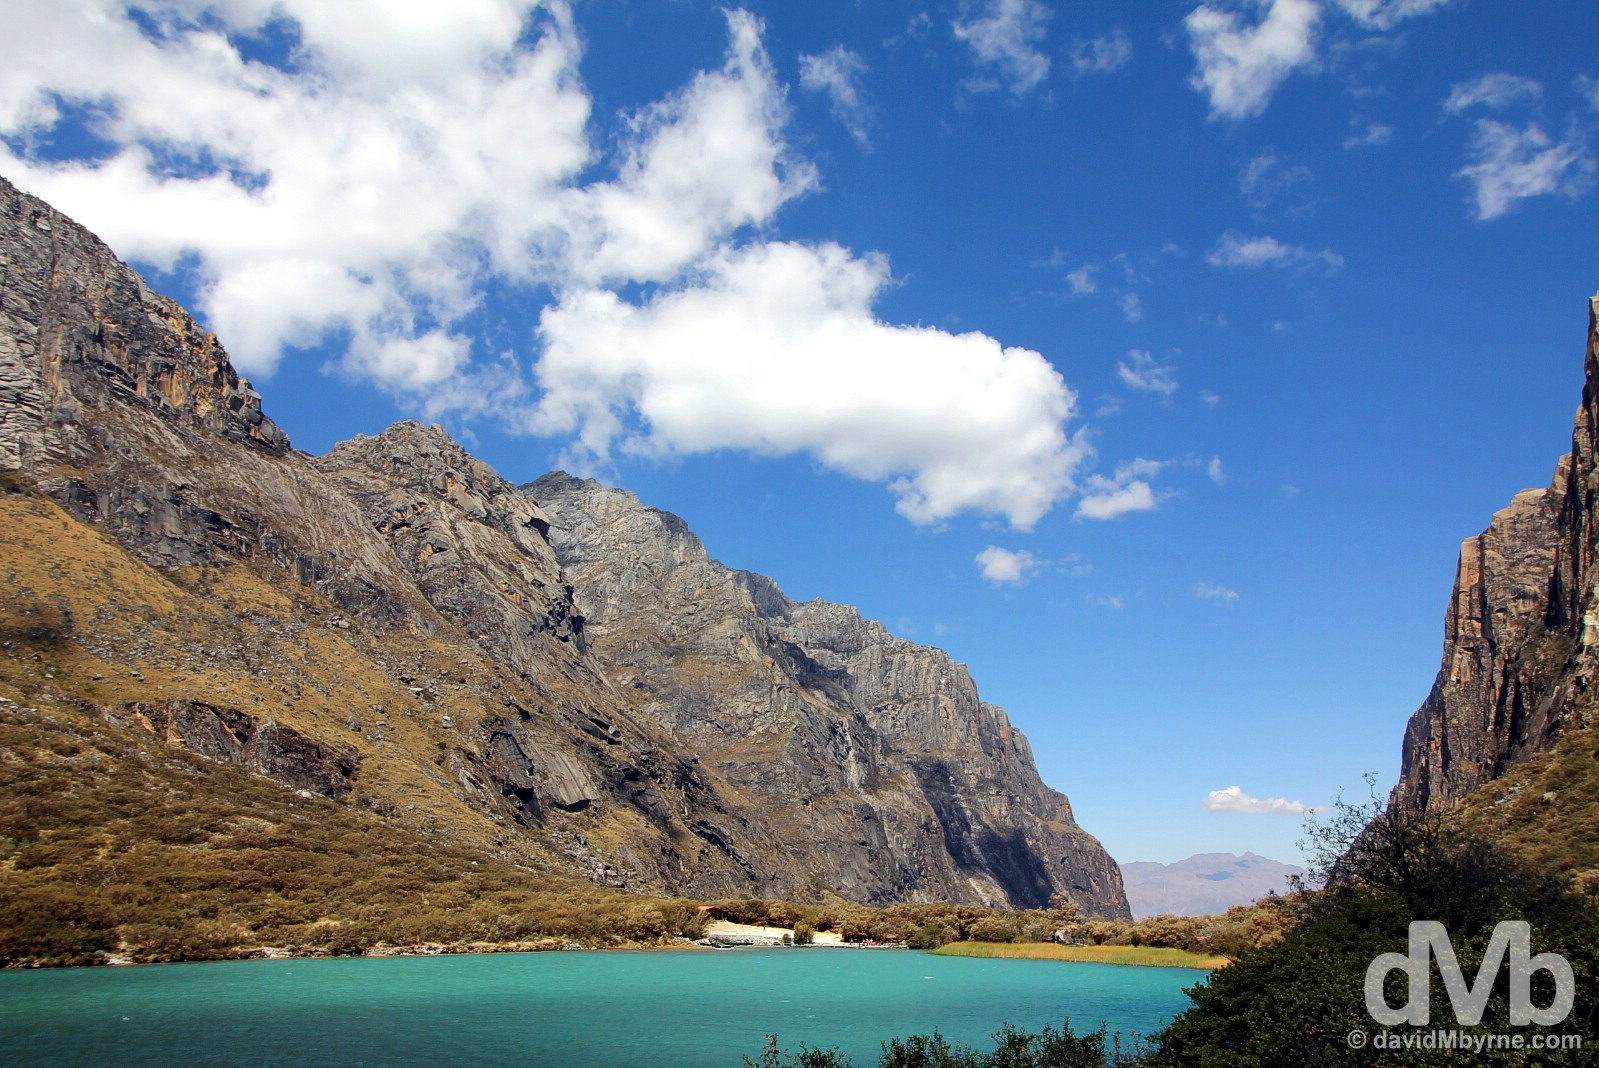 Lago (Lake) Chinan Cocha in Parque Nacional Huascaran, Ancash, Peru. August 5, 2015.